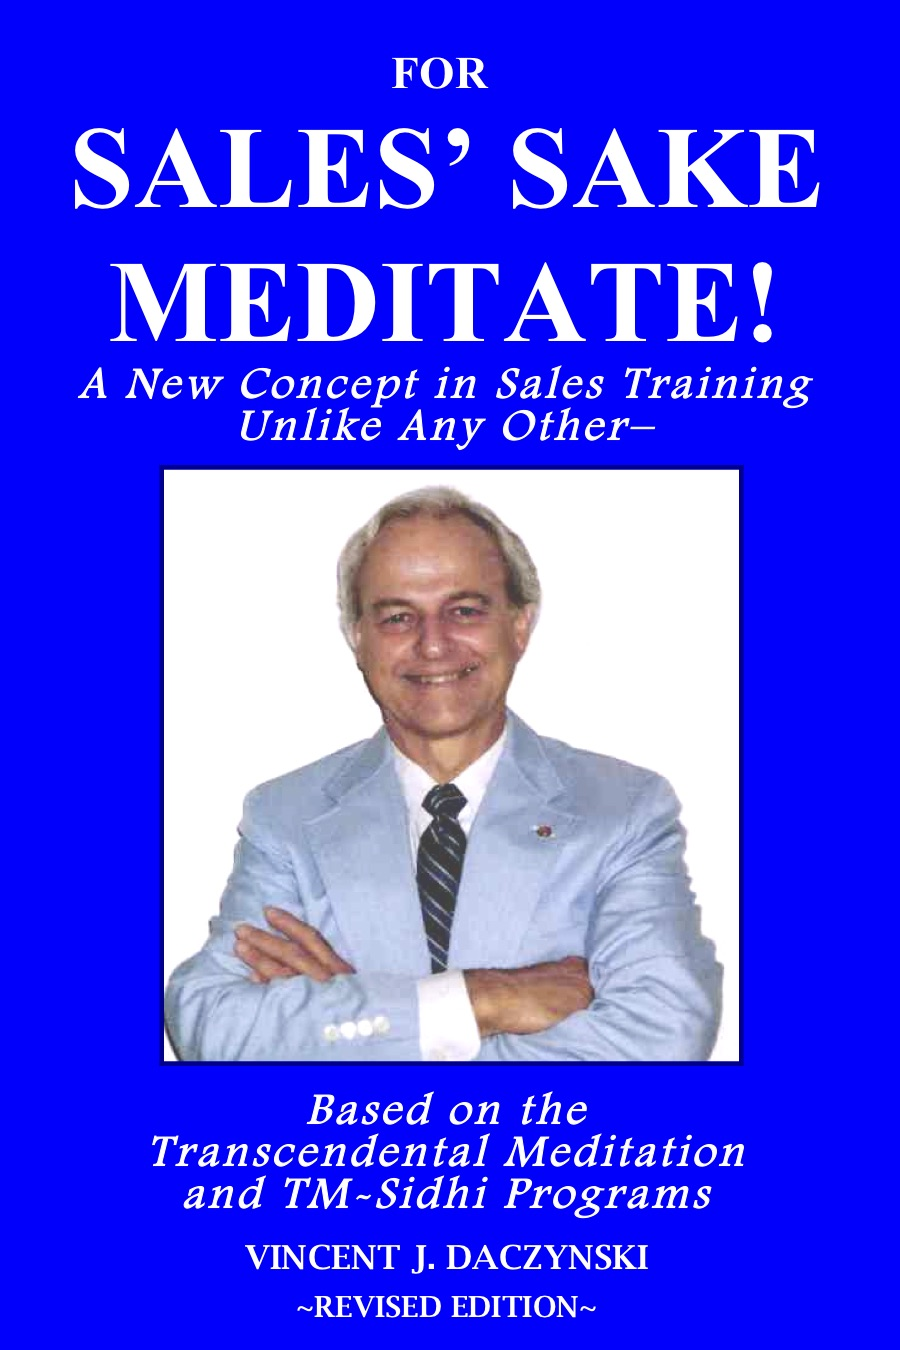 Sales Training Book using Maharishi Transcendental Meditation to boost sales; among best sales training books.